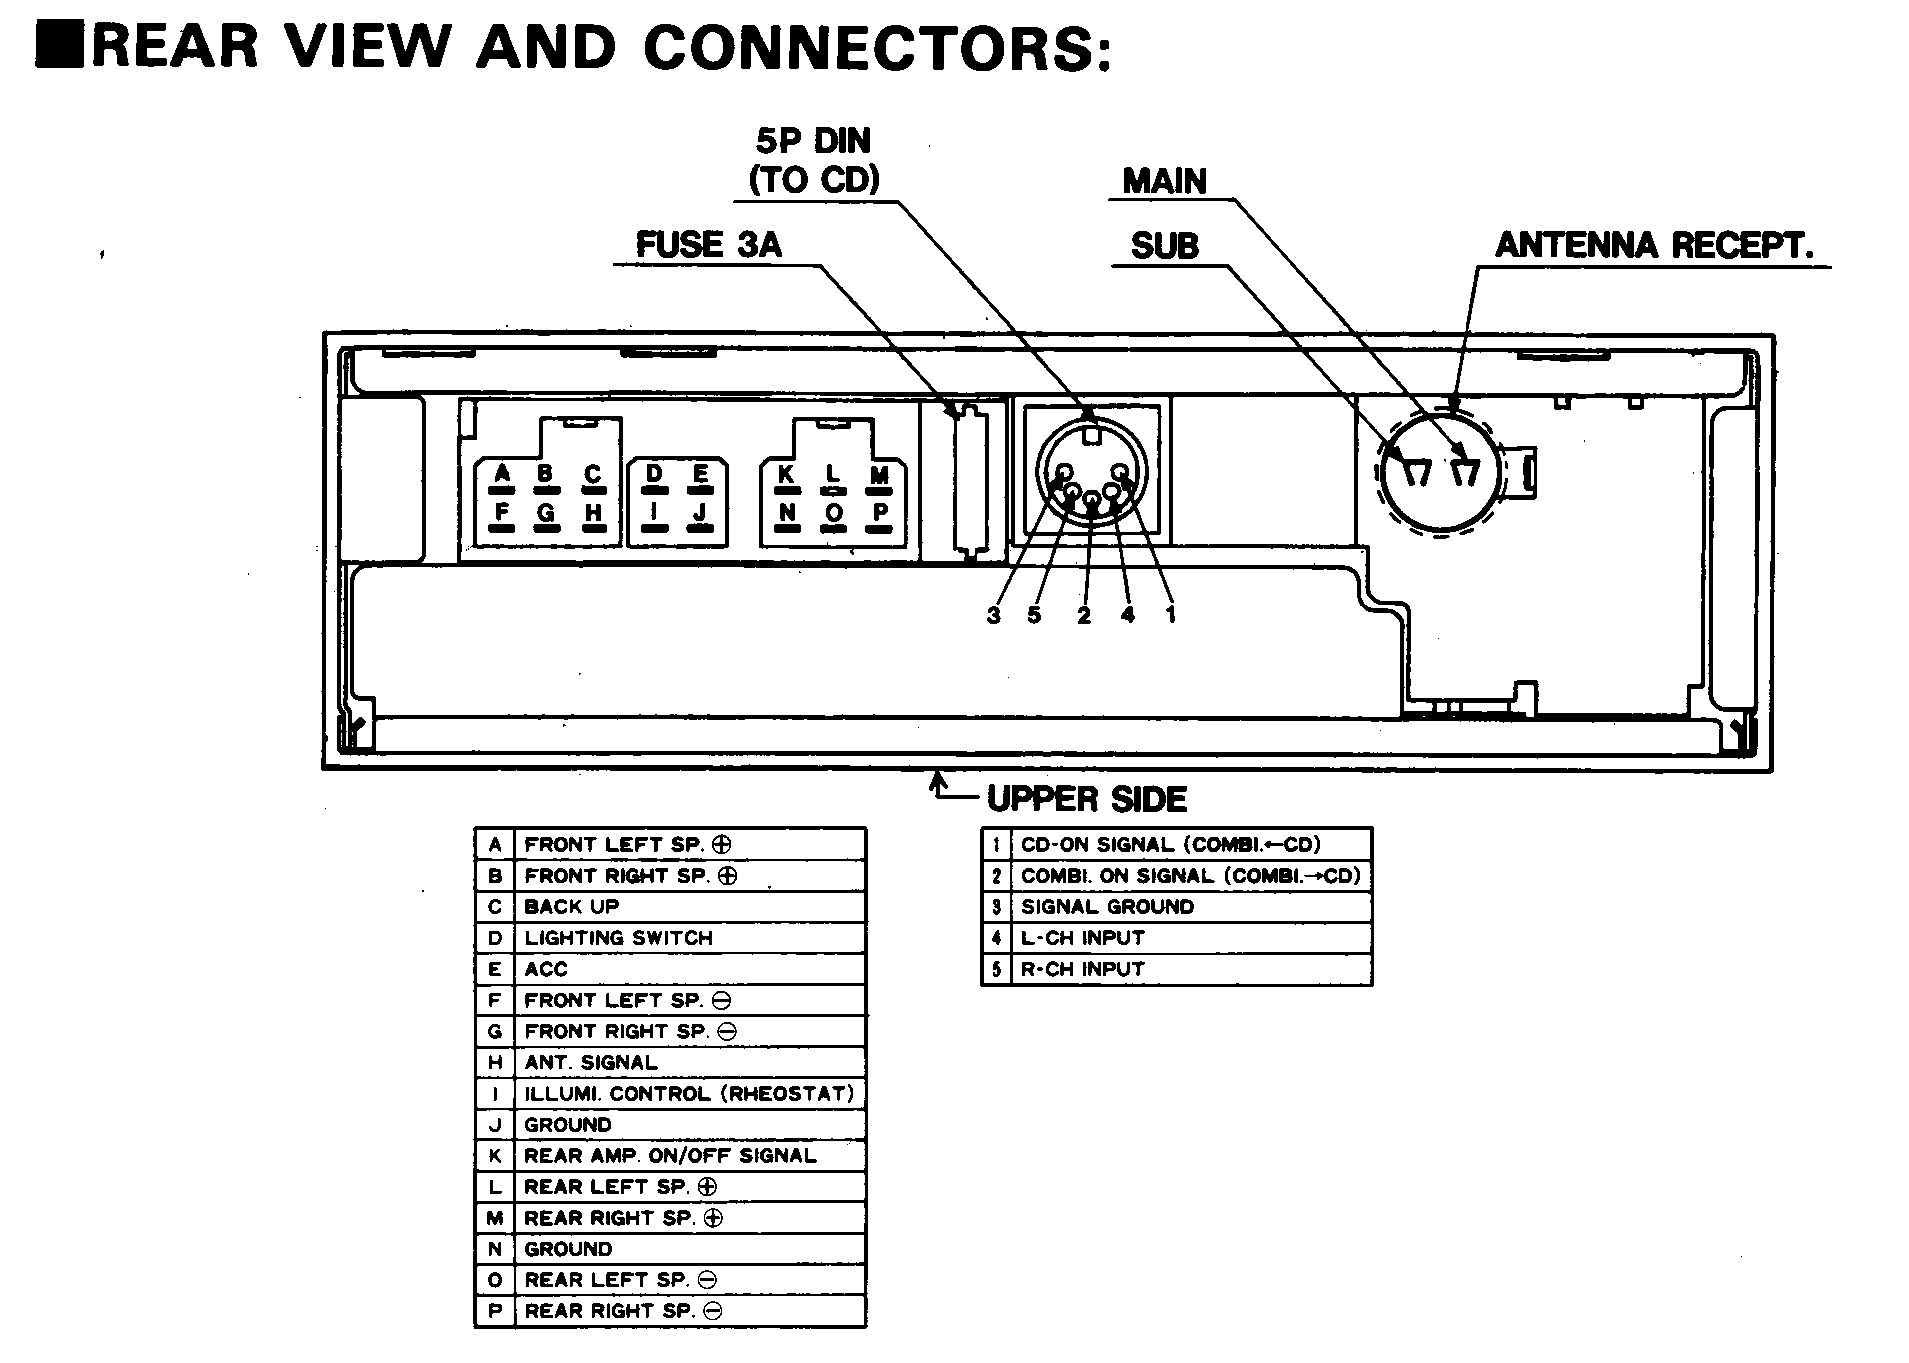 300zx Engine Harness Diagram Nissan Wire Harness Diagram Wiring Diagram Of 300zx Engine Harness Diagram